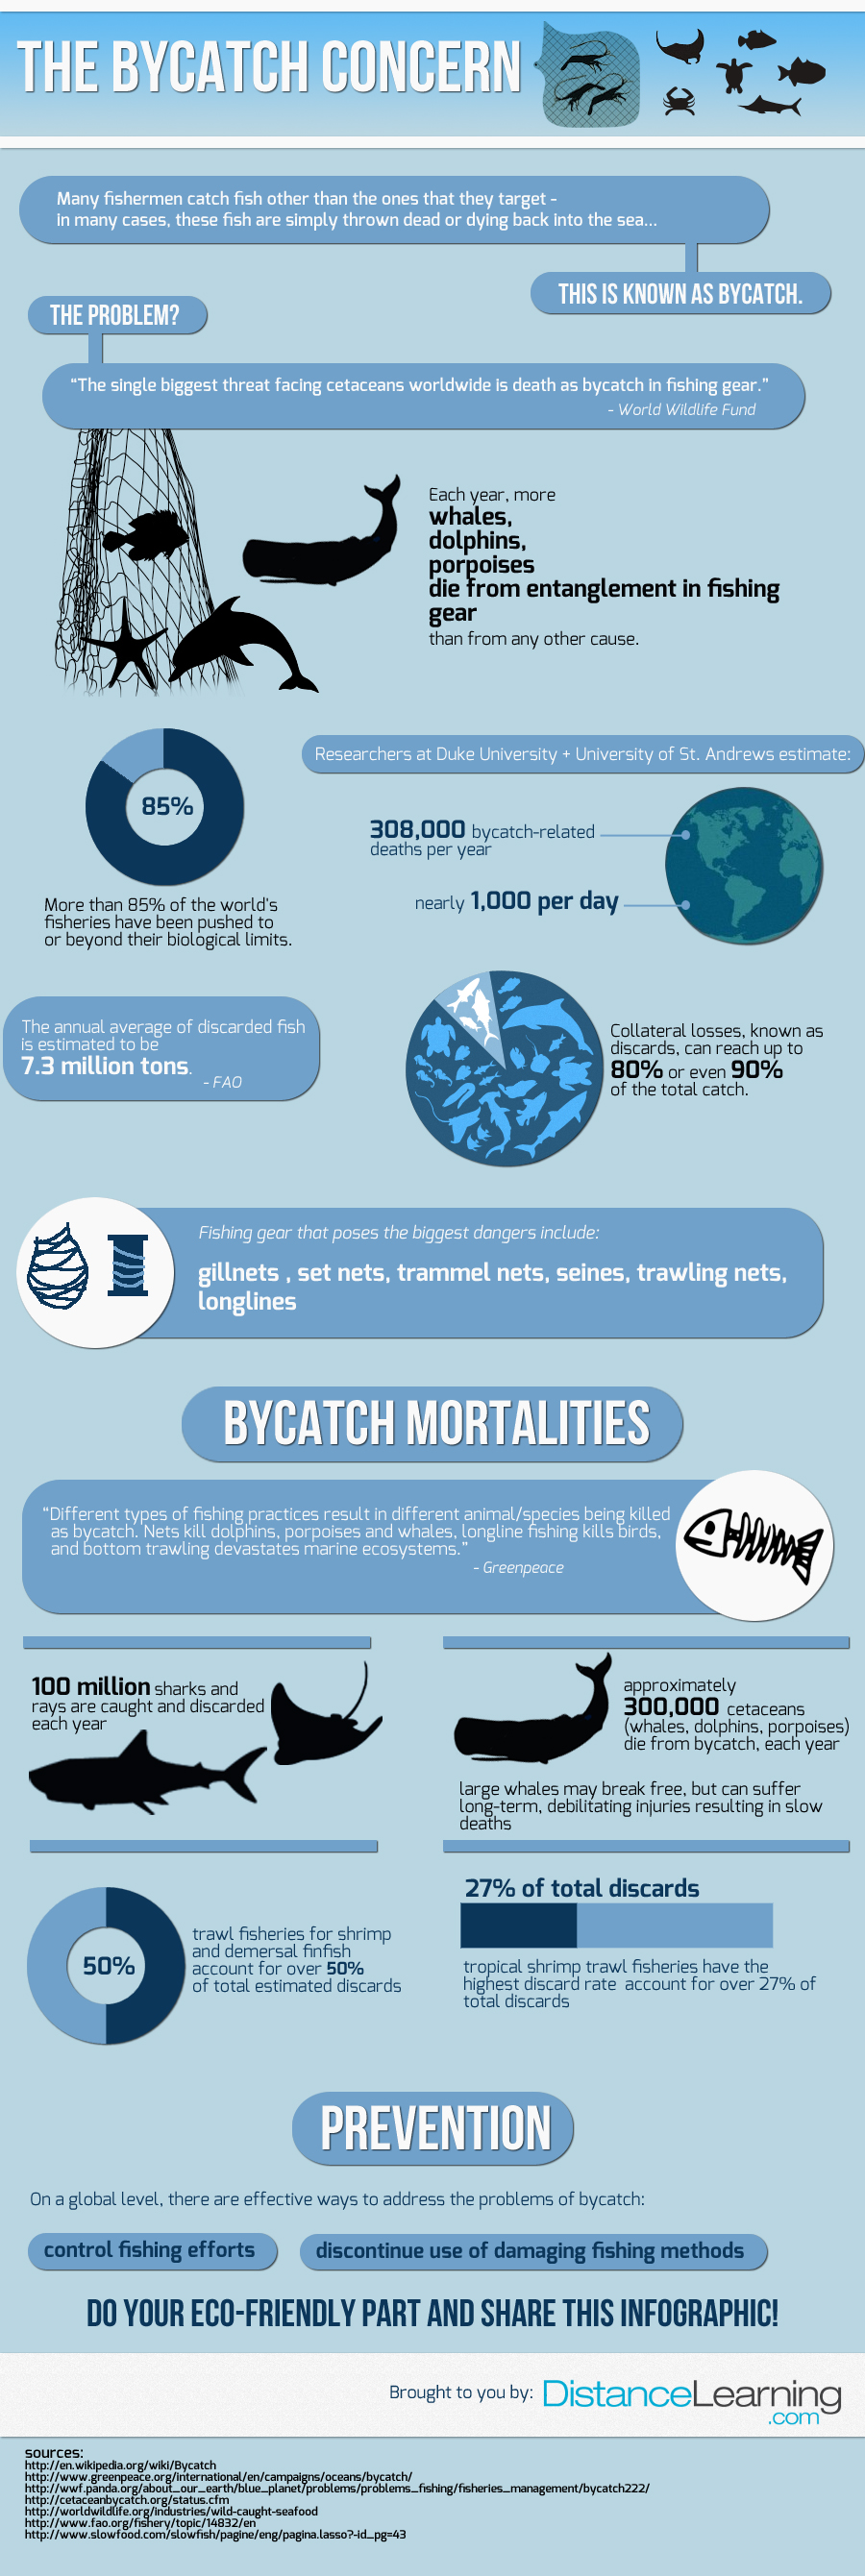 bycatch infographic - the bycatch concern